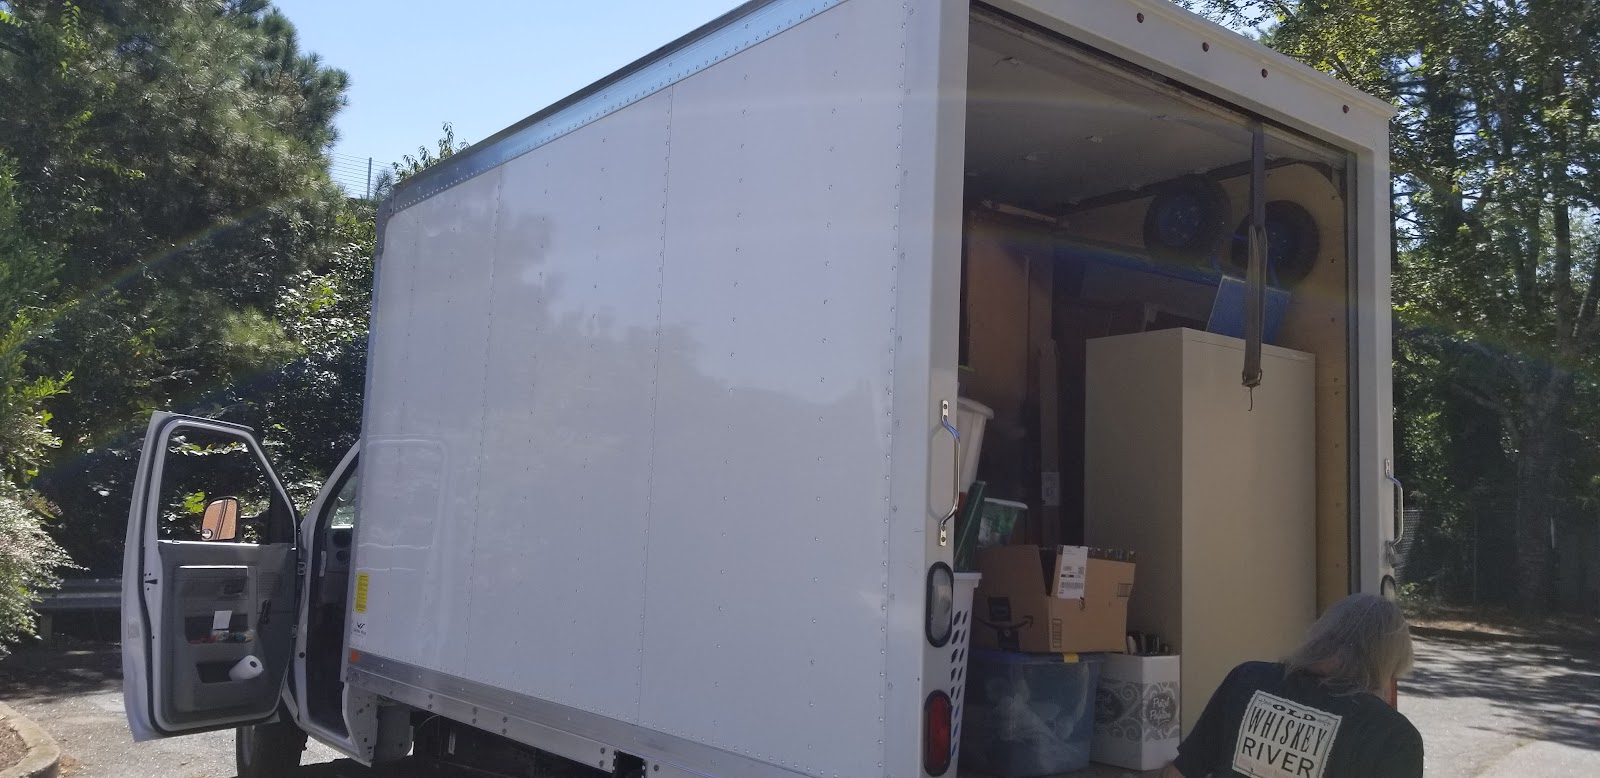 Image: one of several truckloads heading to Project Safe; the panel truck is filled to the top with file cabinets, chairs, desks, artwork, etc.